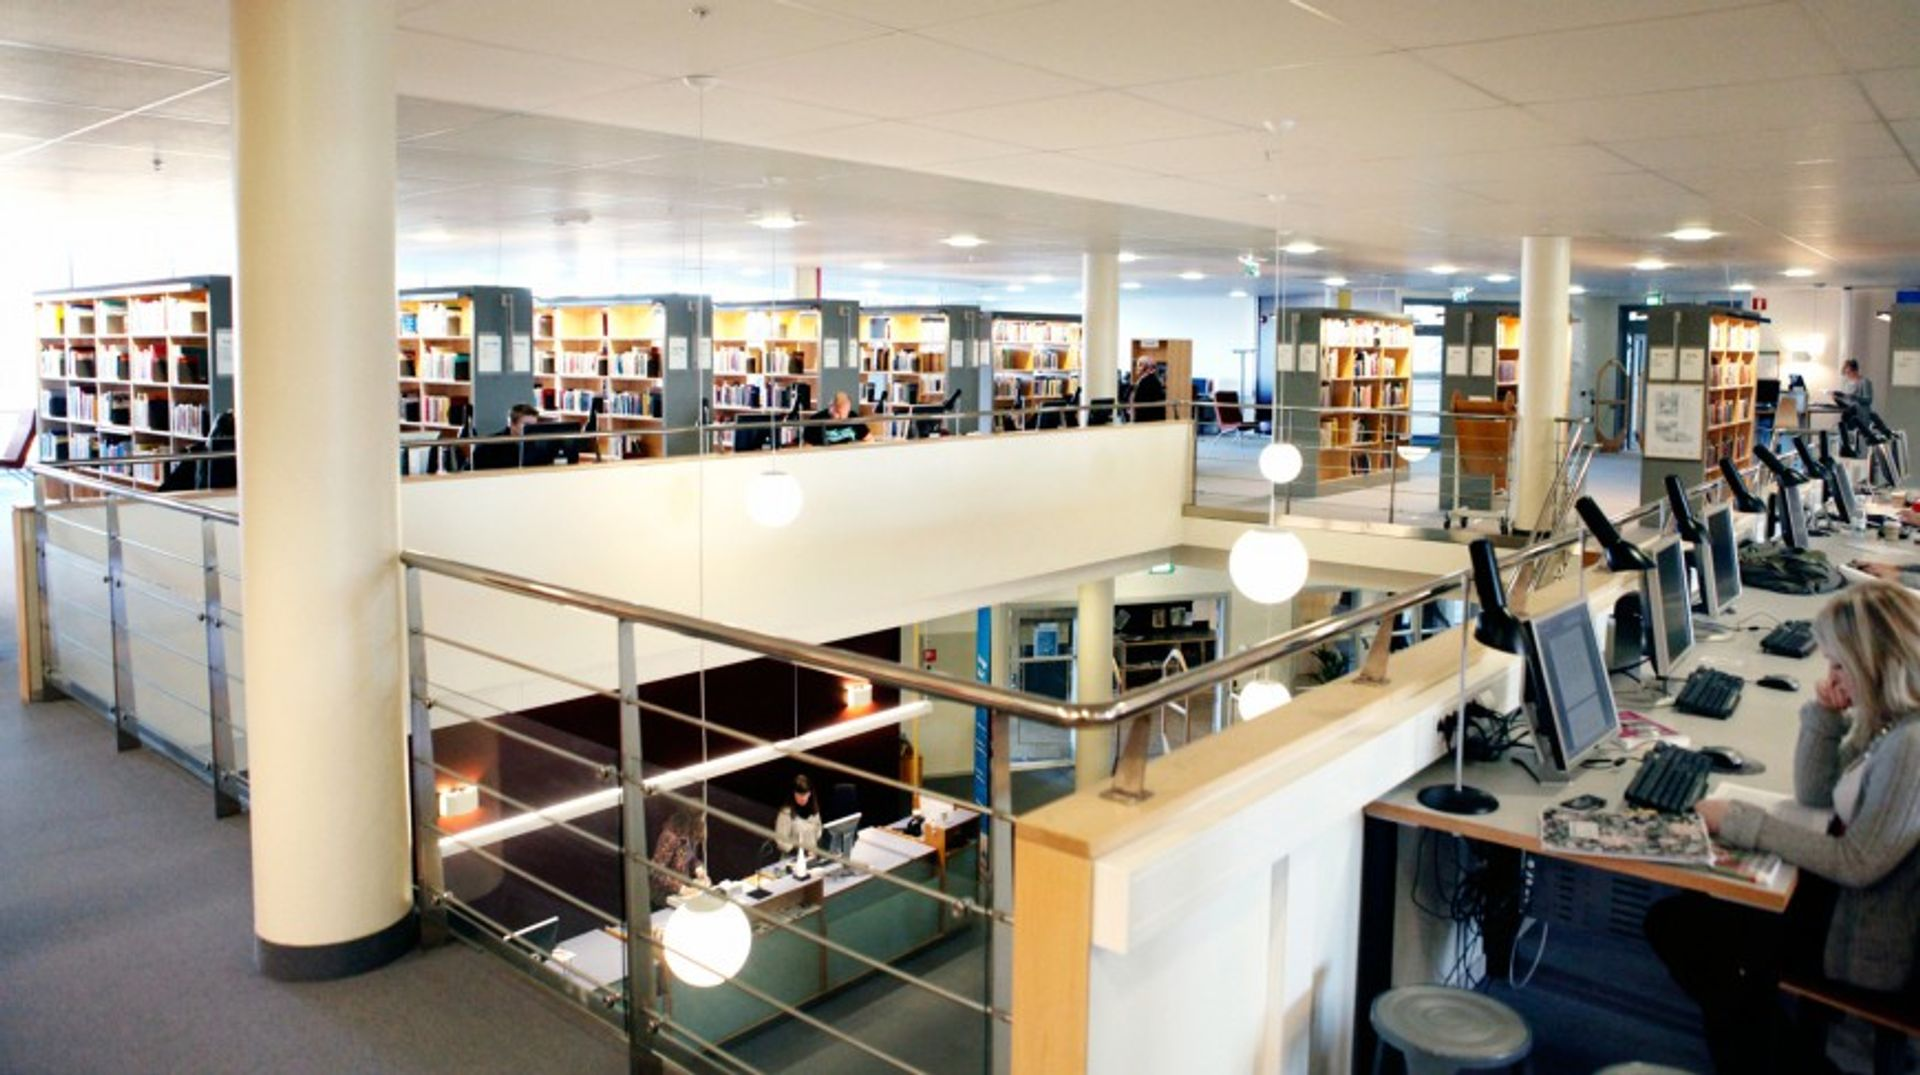 University West library